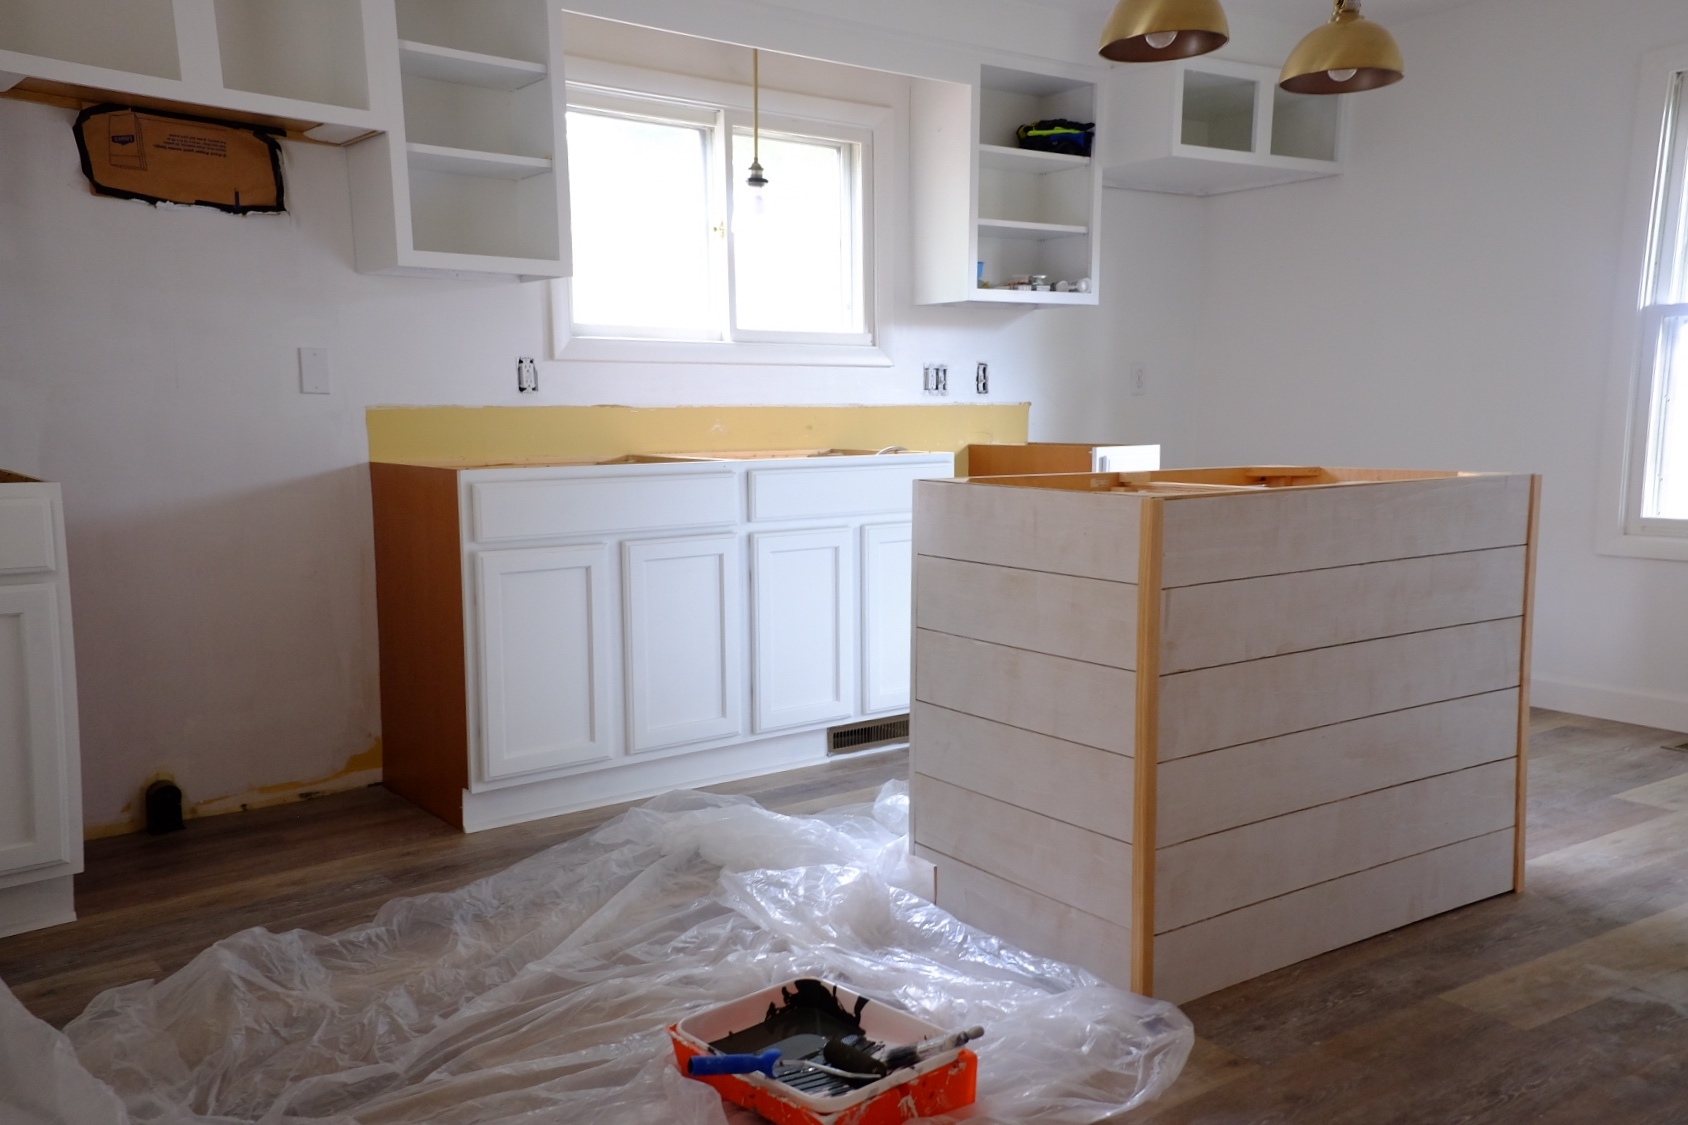 We purchased remnant pieces of quartz for the countertops and shiplapped the island which we found at Habitat for Humanity.